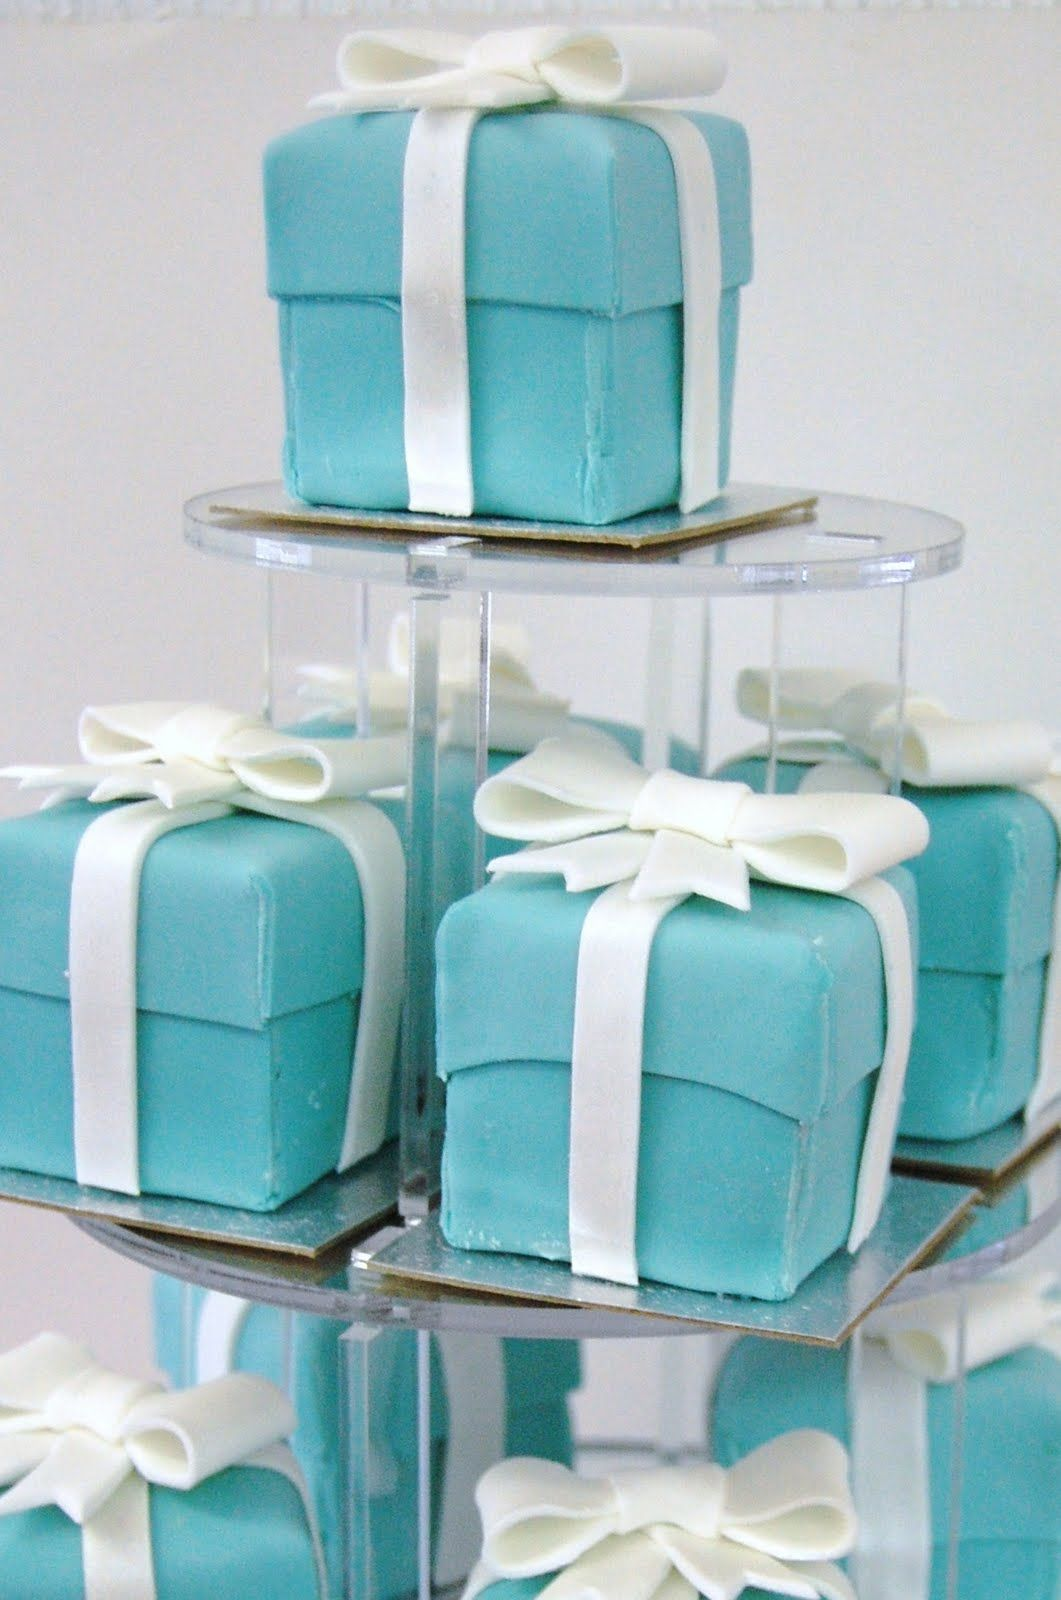 inspiration: cube cakes with fondant or frosting & a sour belt bow